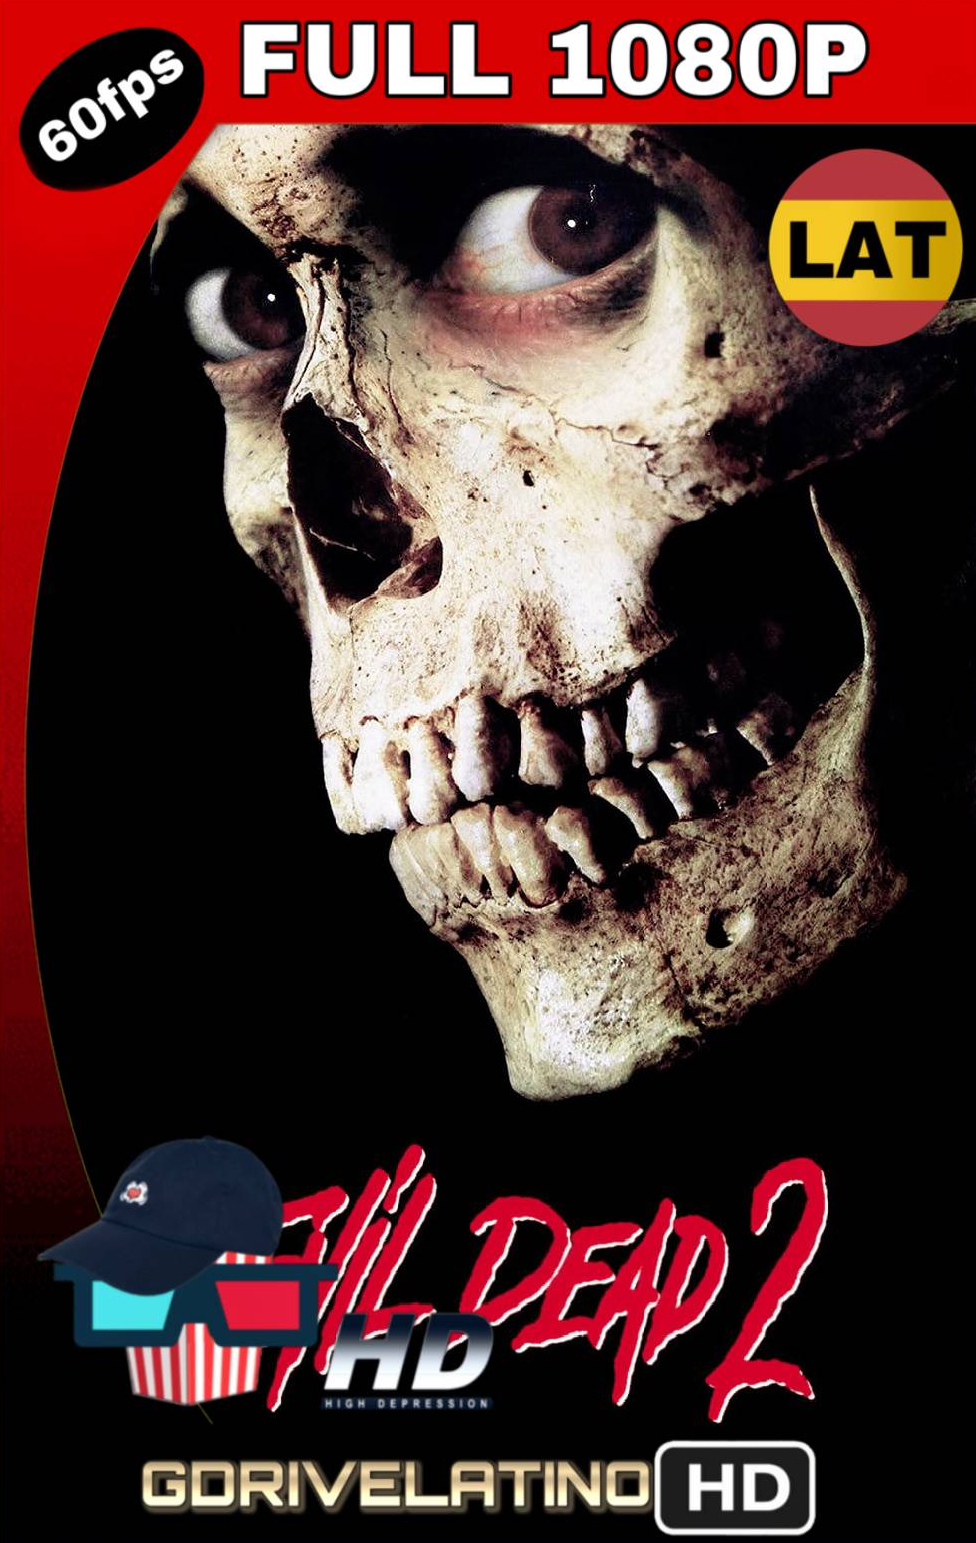 Evil Dead 2 (1987) BRRip FULL 1080p (60 FPS) Latino-Ingles MKV